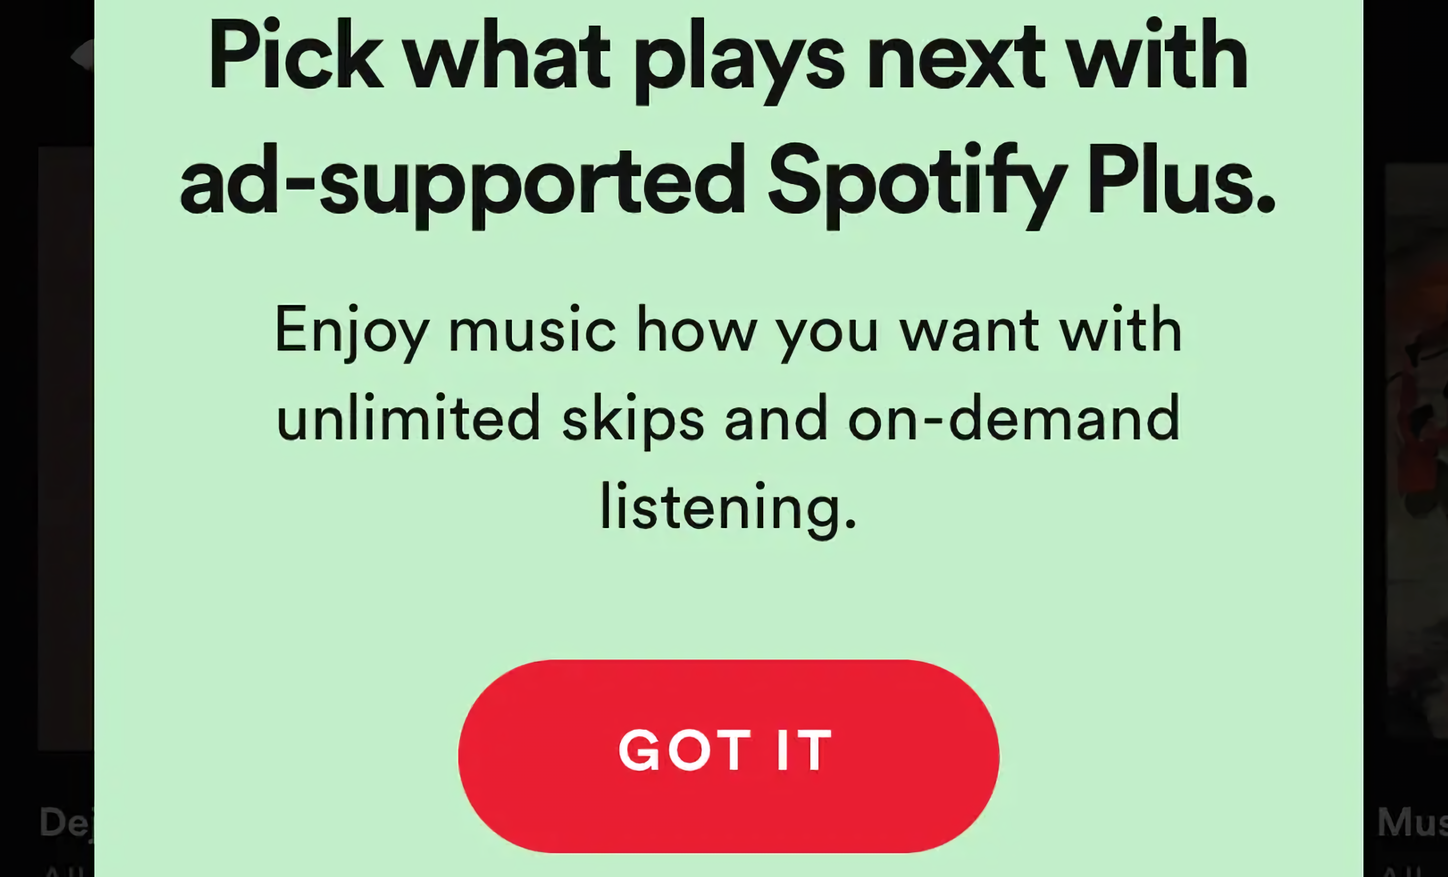 Spotify is piloting a cheaper ad-supported tier starting at $0.99 a month